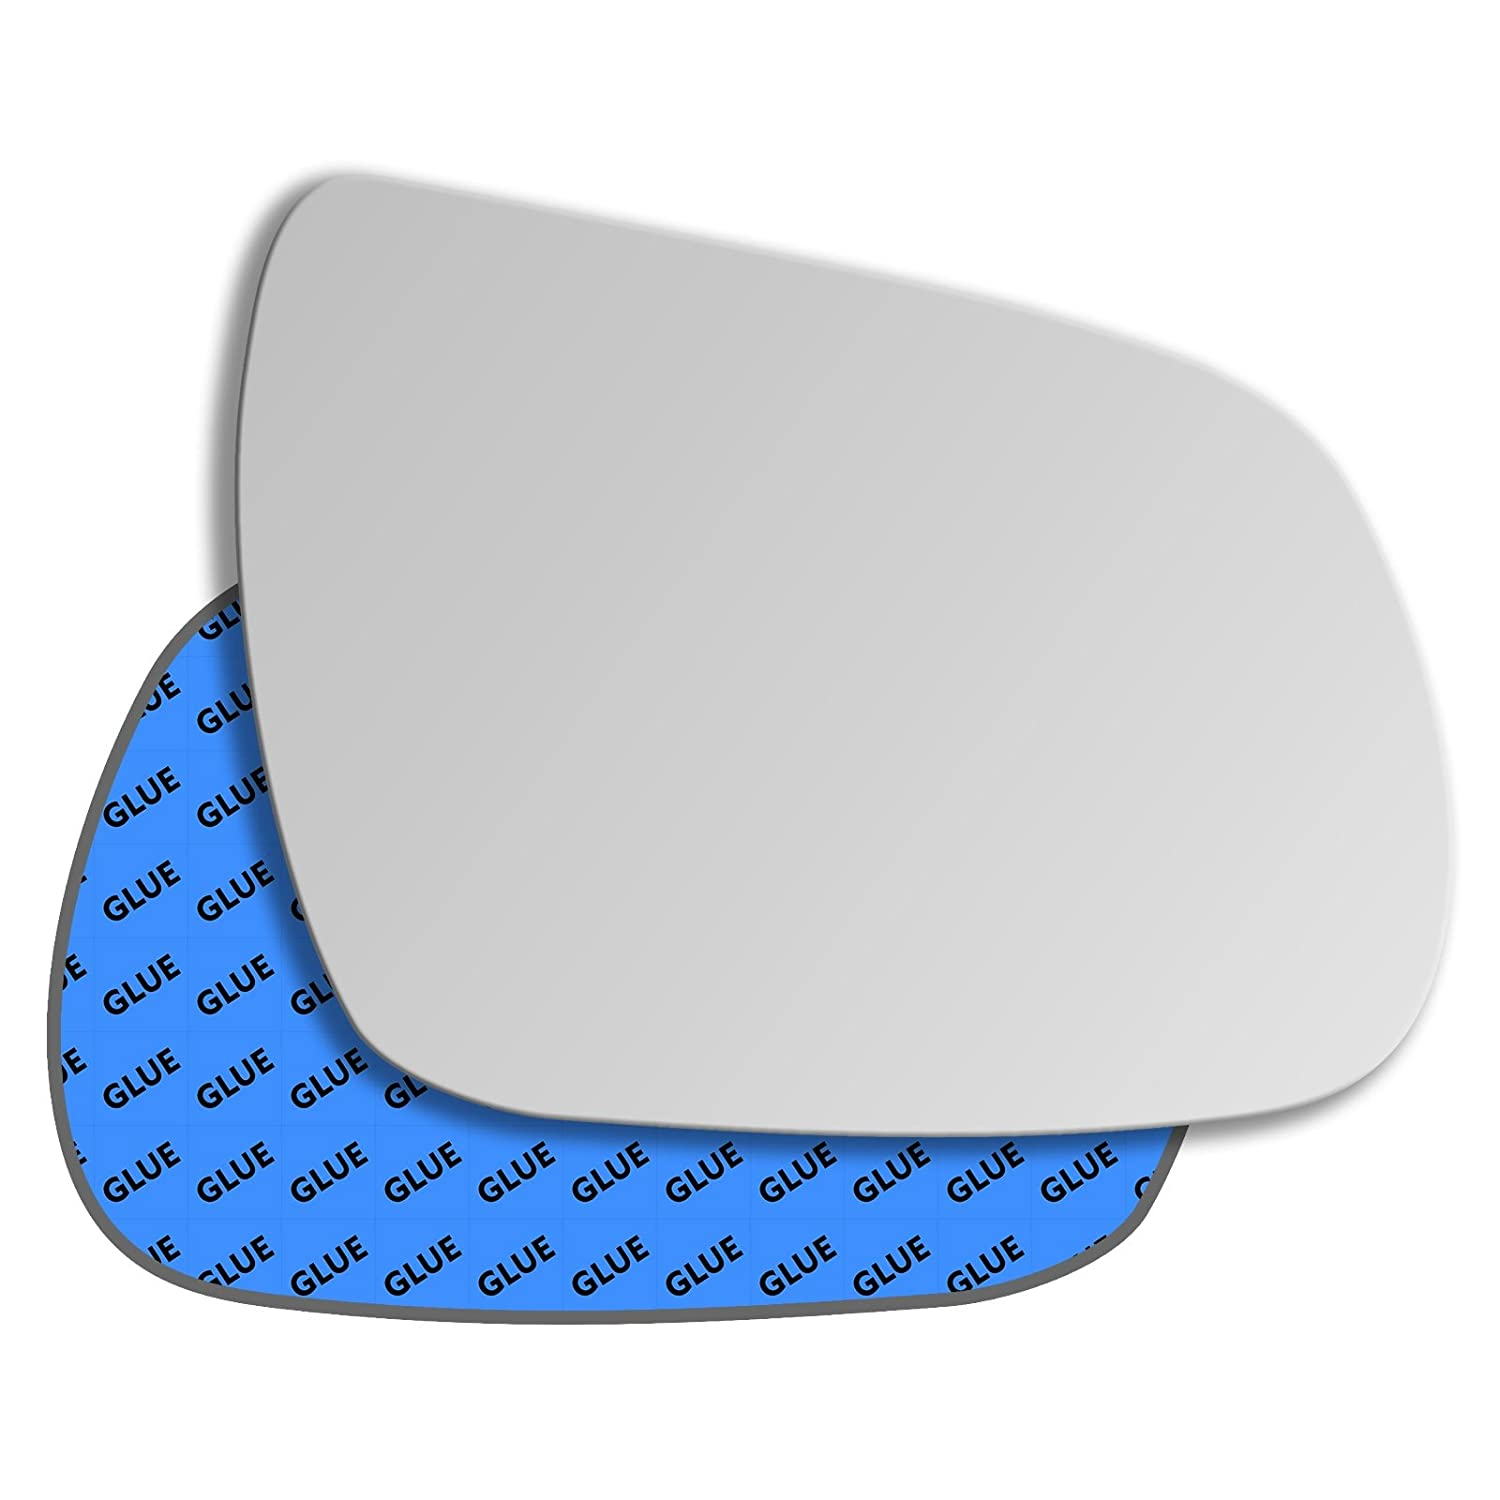 Hightecpl 536RS Right Driver Side Convex Door Wing Mirror Glass Channel Autoparts Limited